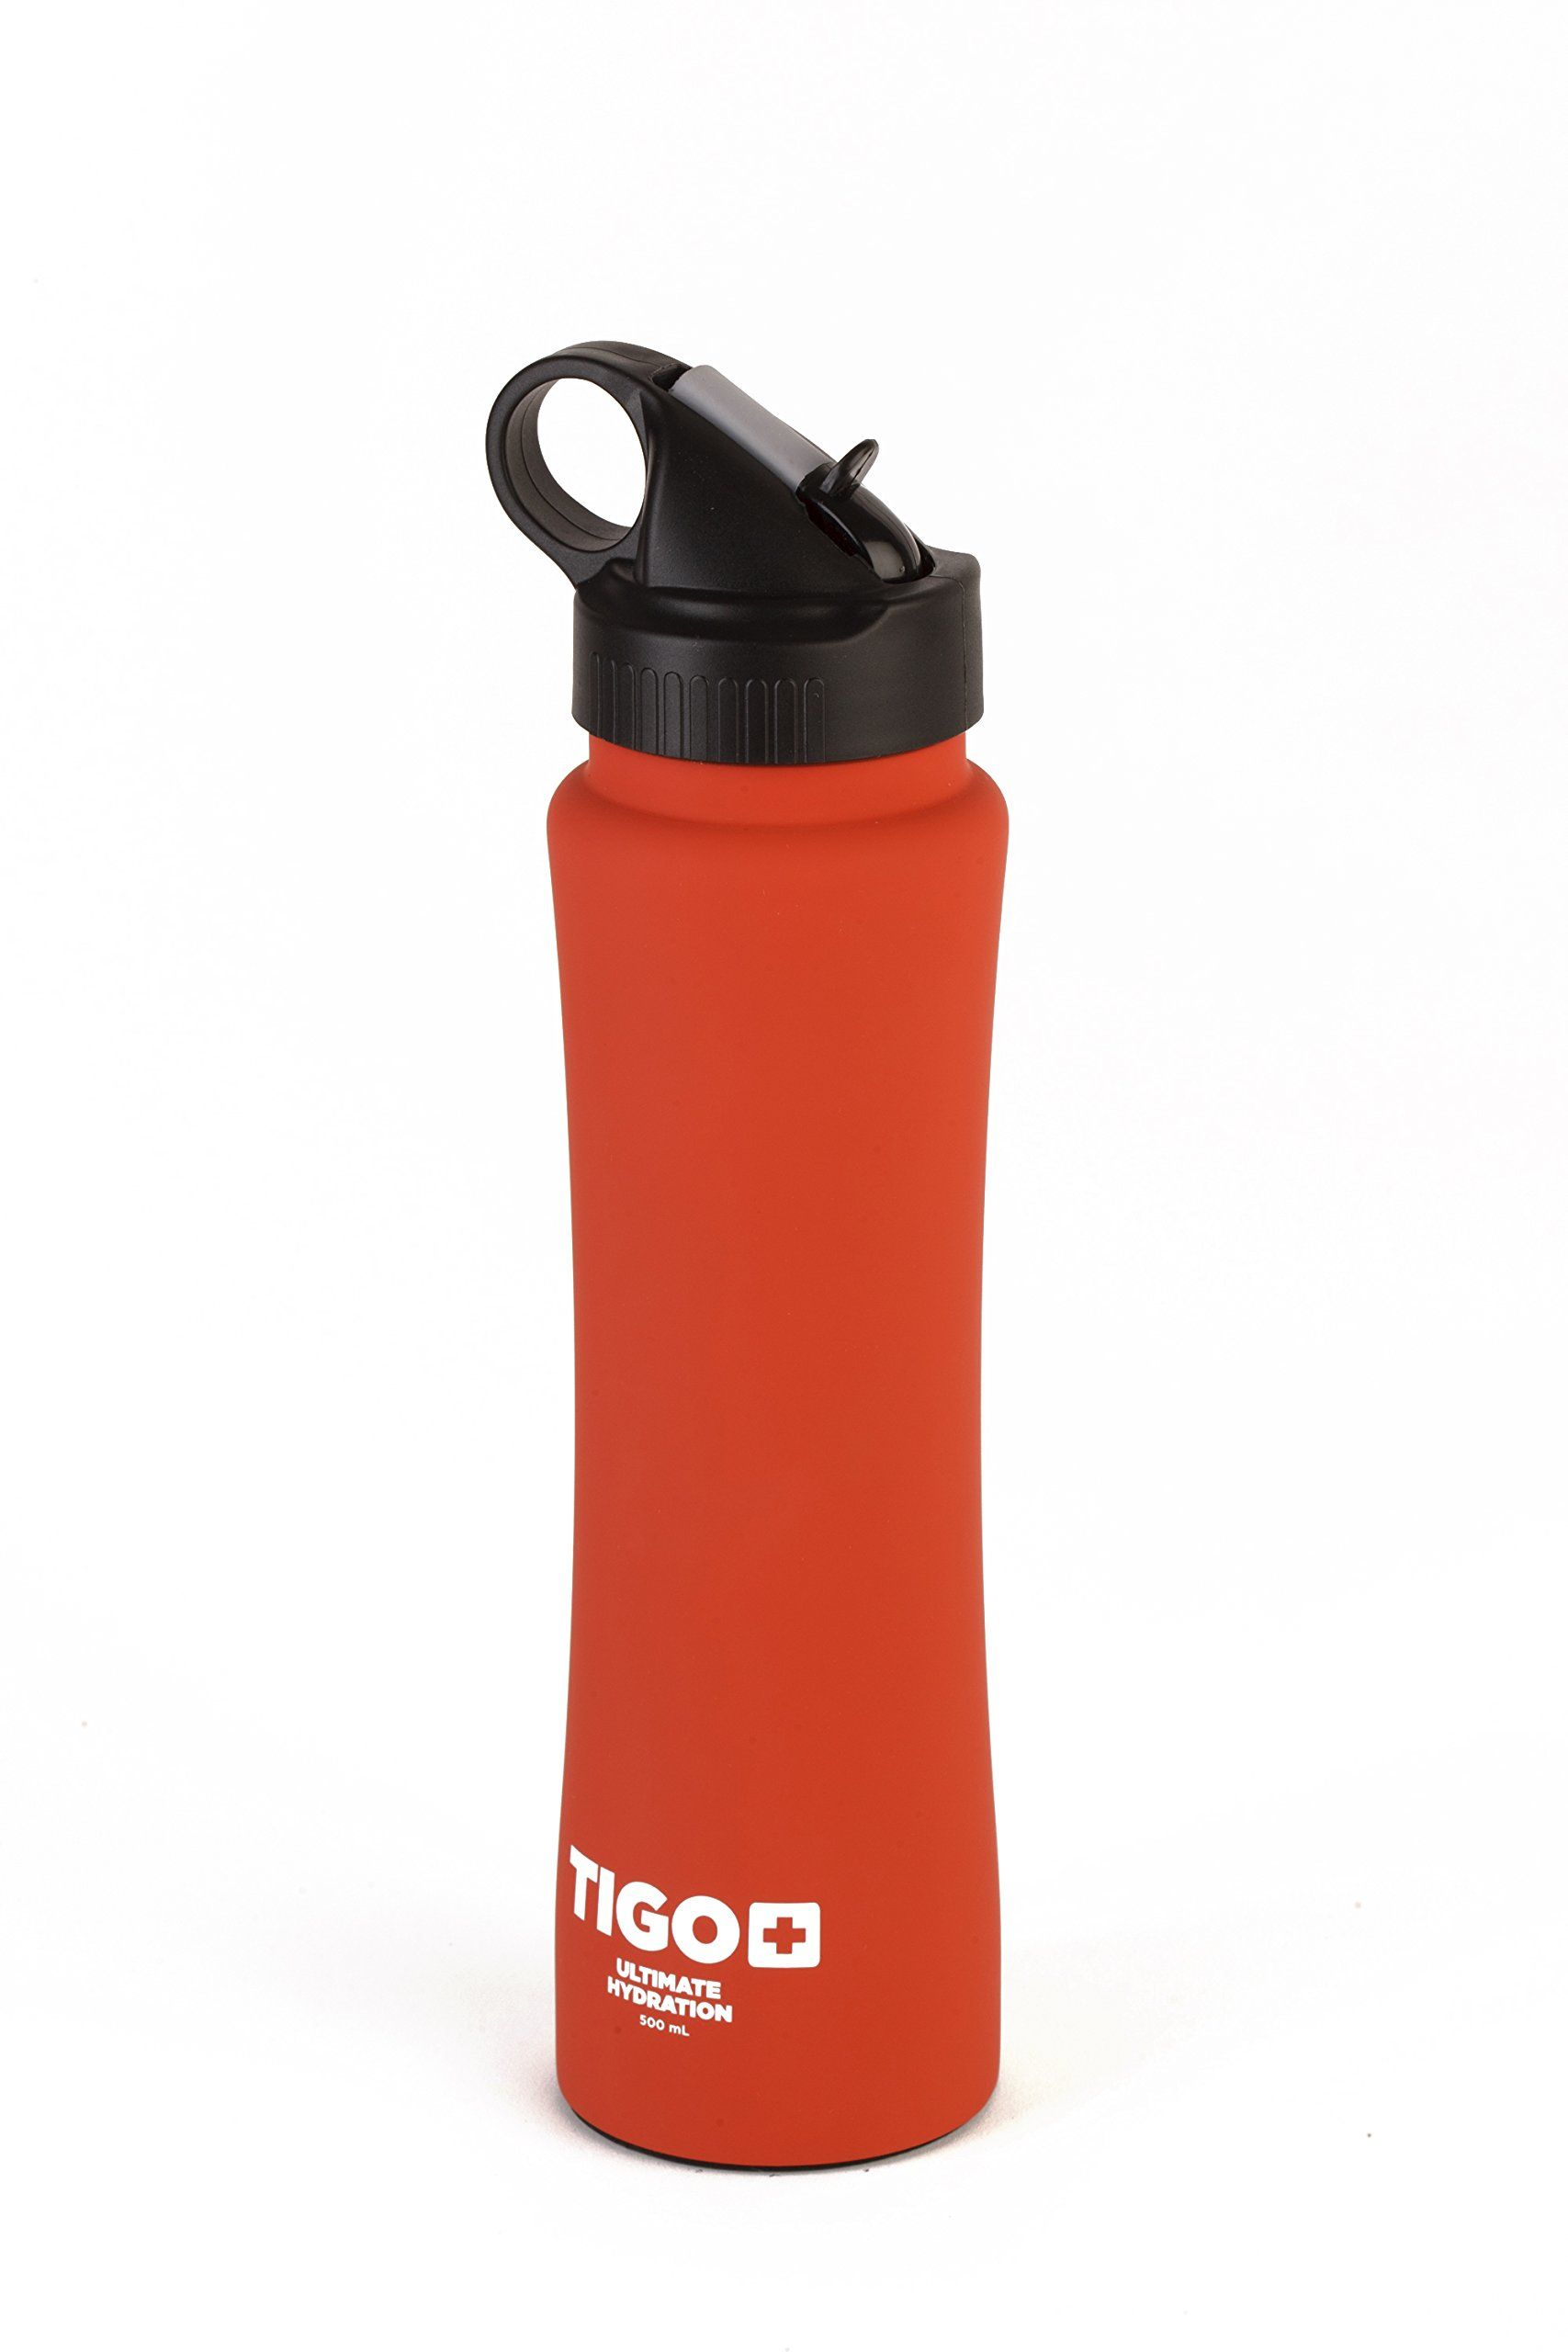 TIGO Stainless Steel Doble Wall Insulated water Bottle